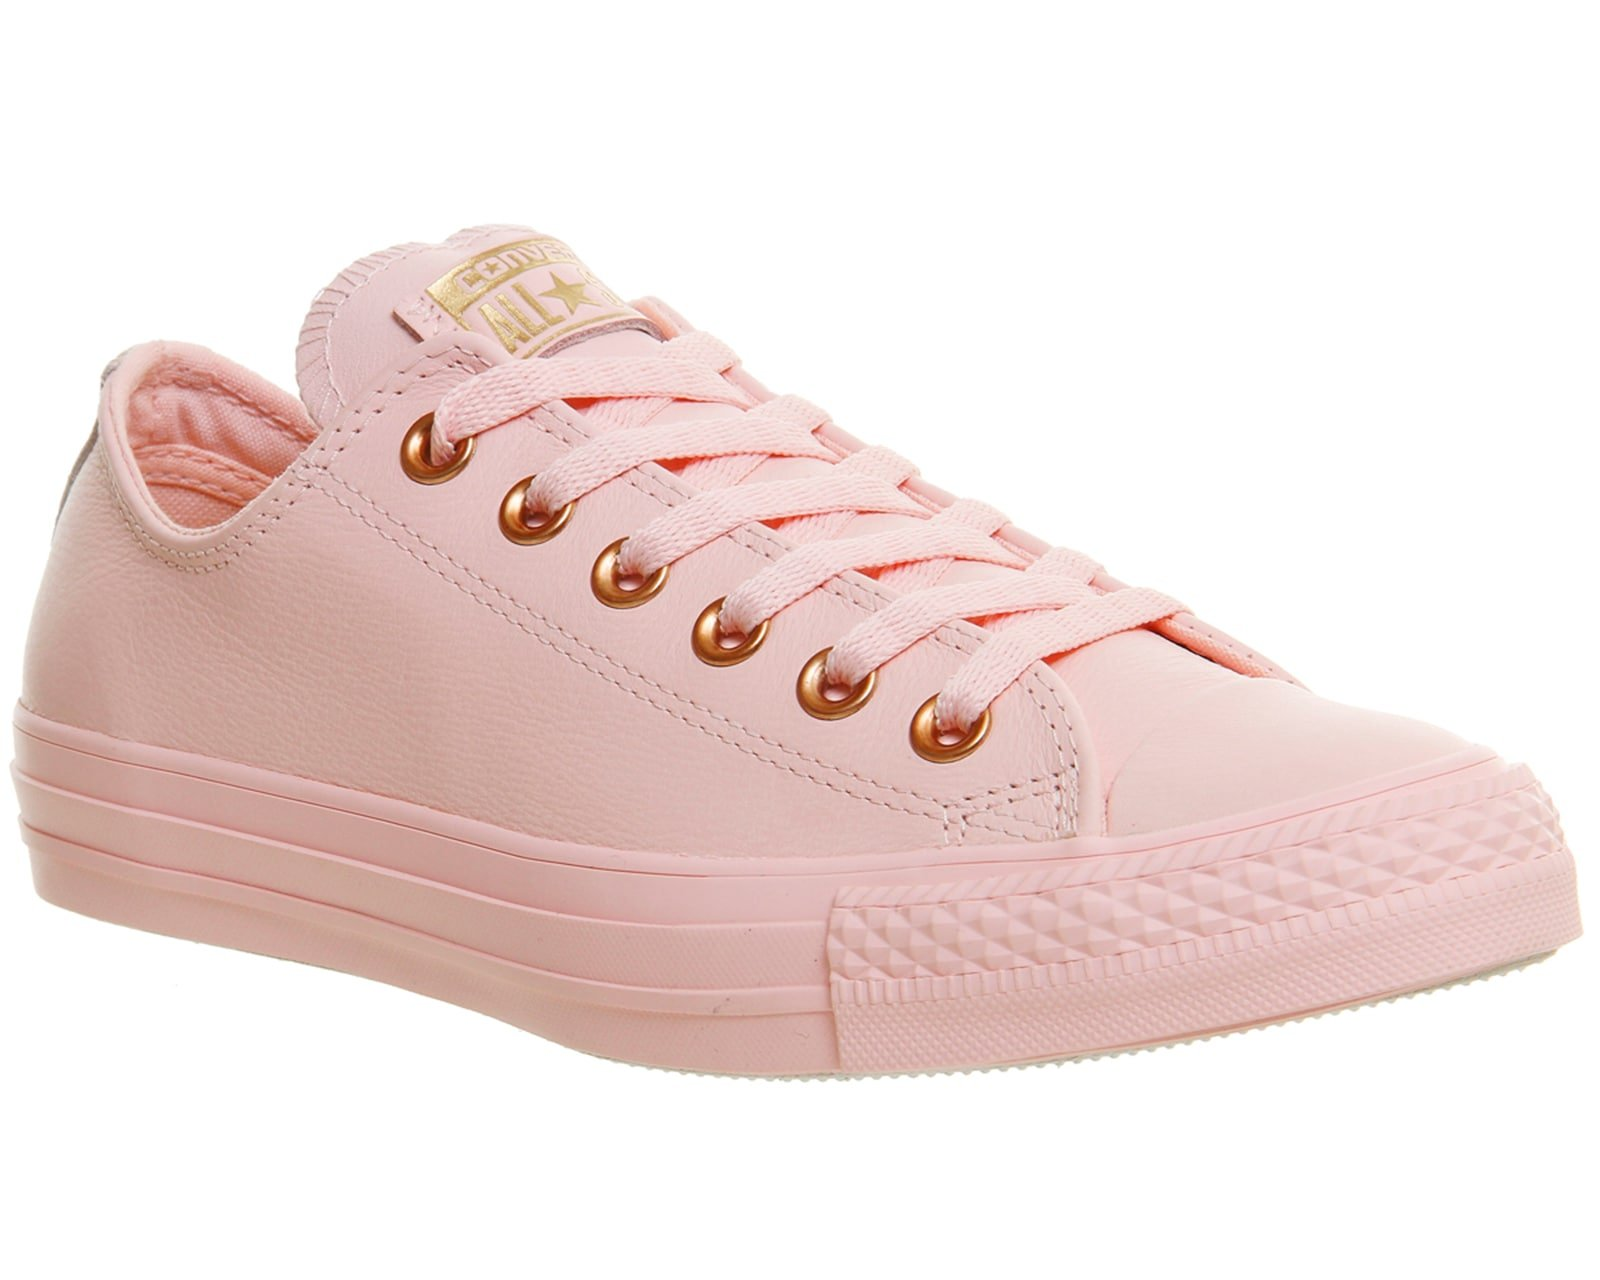 Converse Chuck Taylor All Star Lo Sneaker (Mens 6.5/Womens 8.5, Vapour Pink Rose Gold Snake Exclusive 9525)